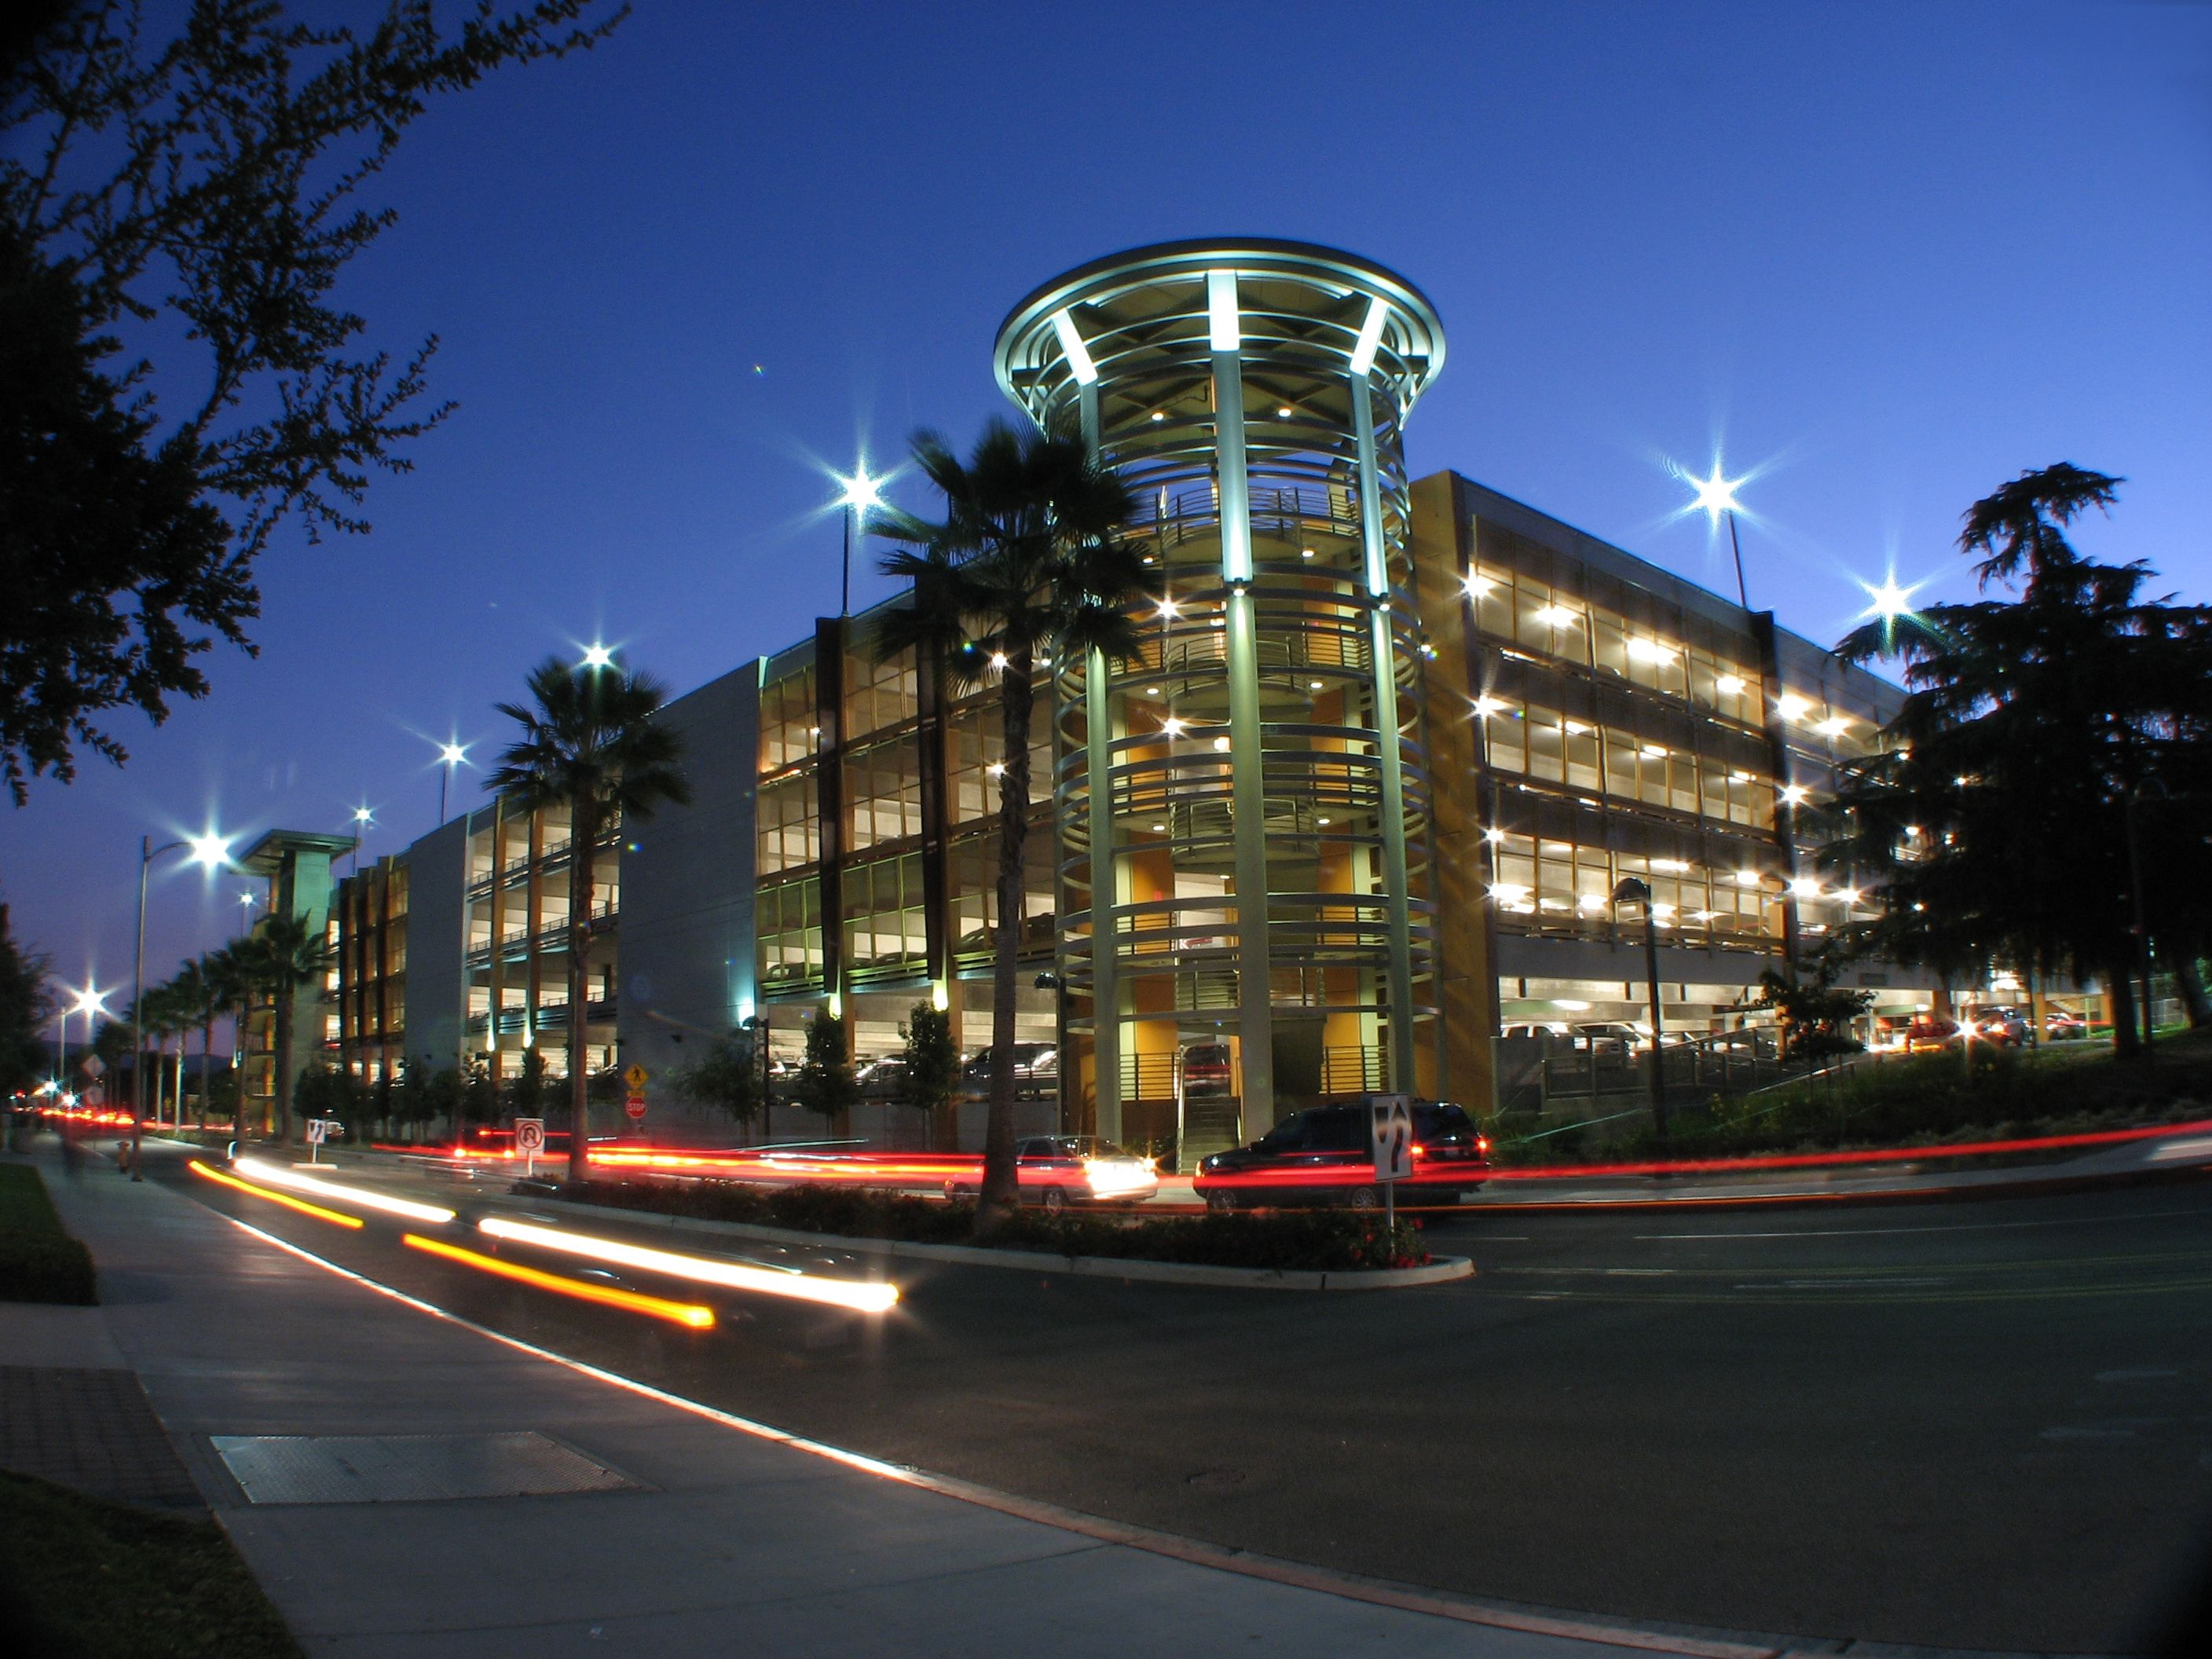 Color printing csun - B3 Parking Structure At Night